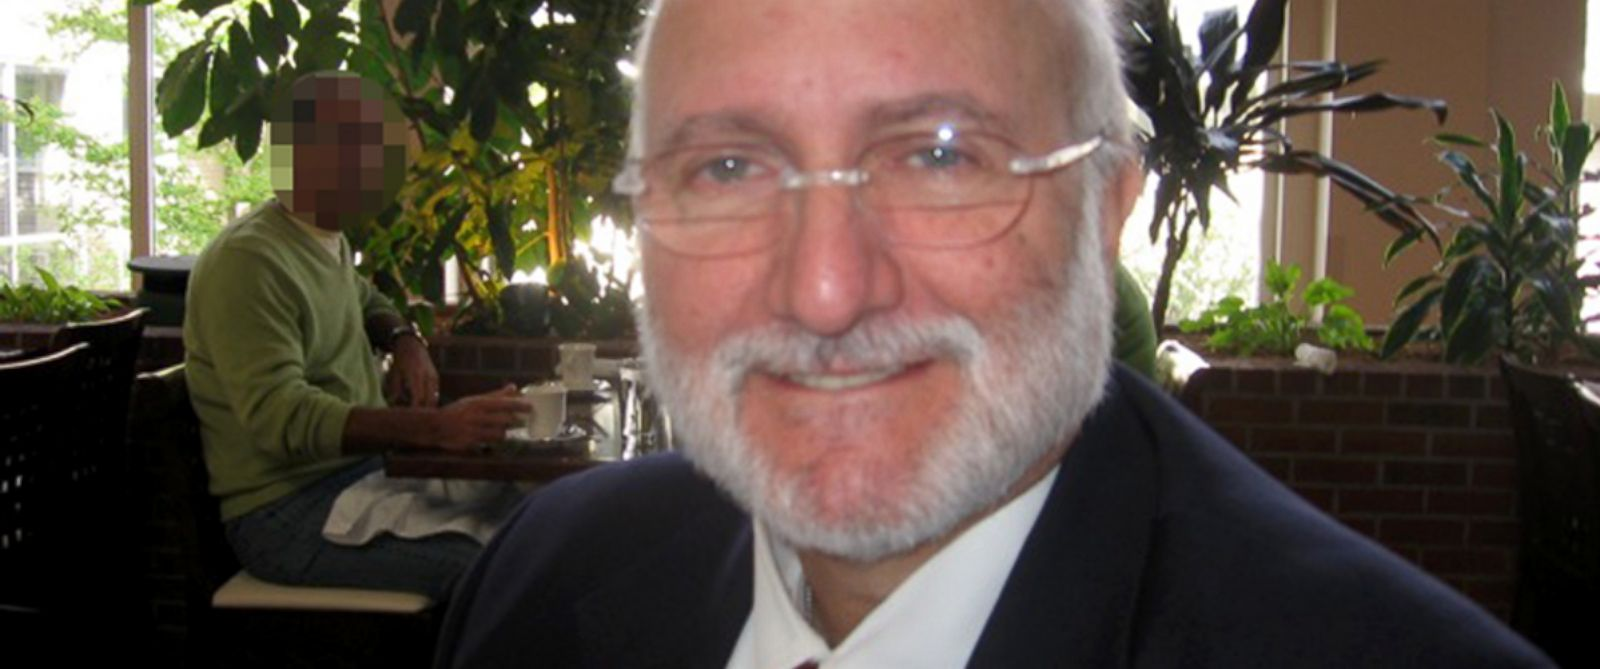 PHOTO: Alan Gross is seen in this undated file photo.